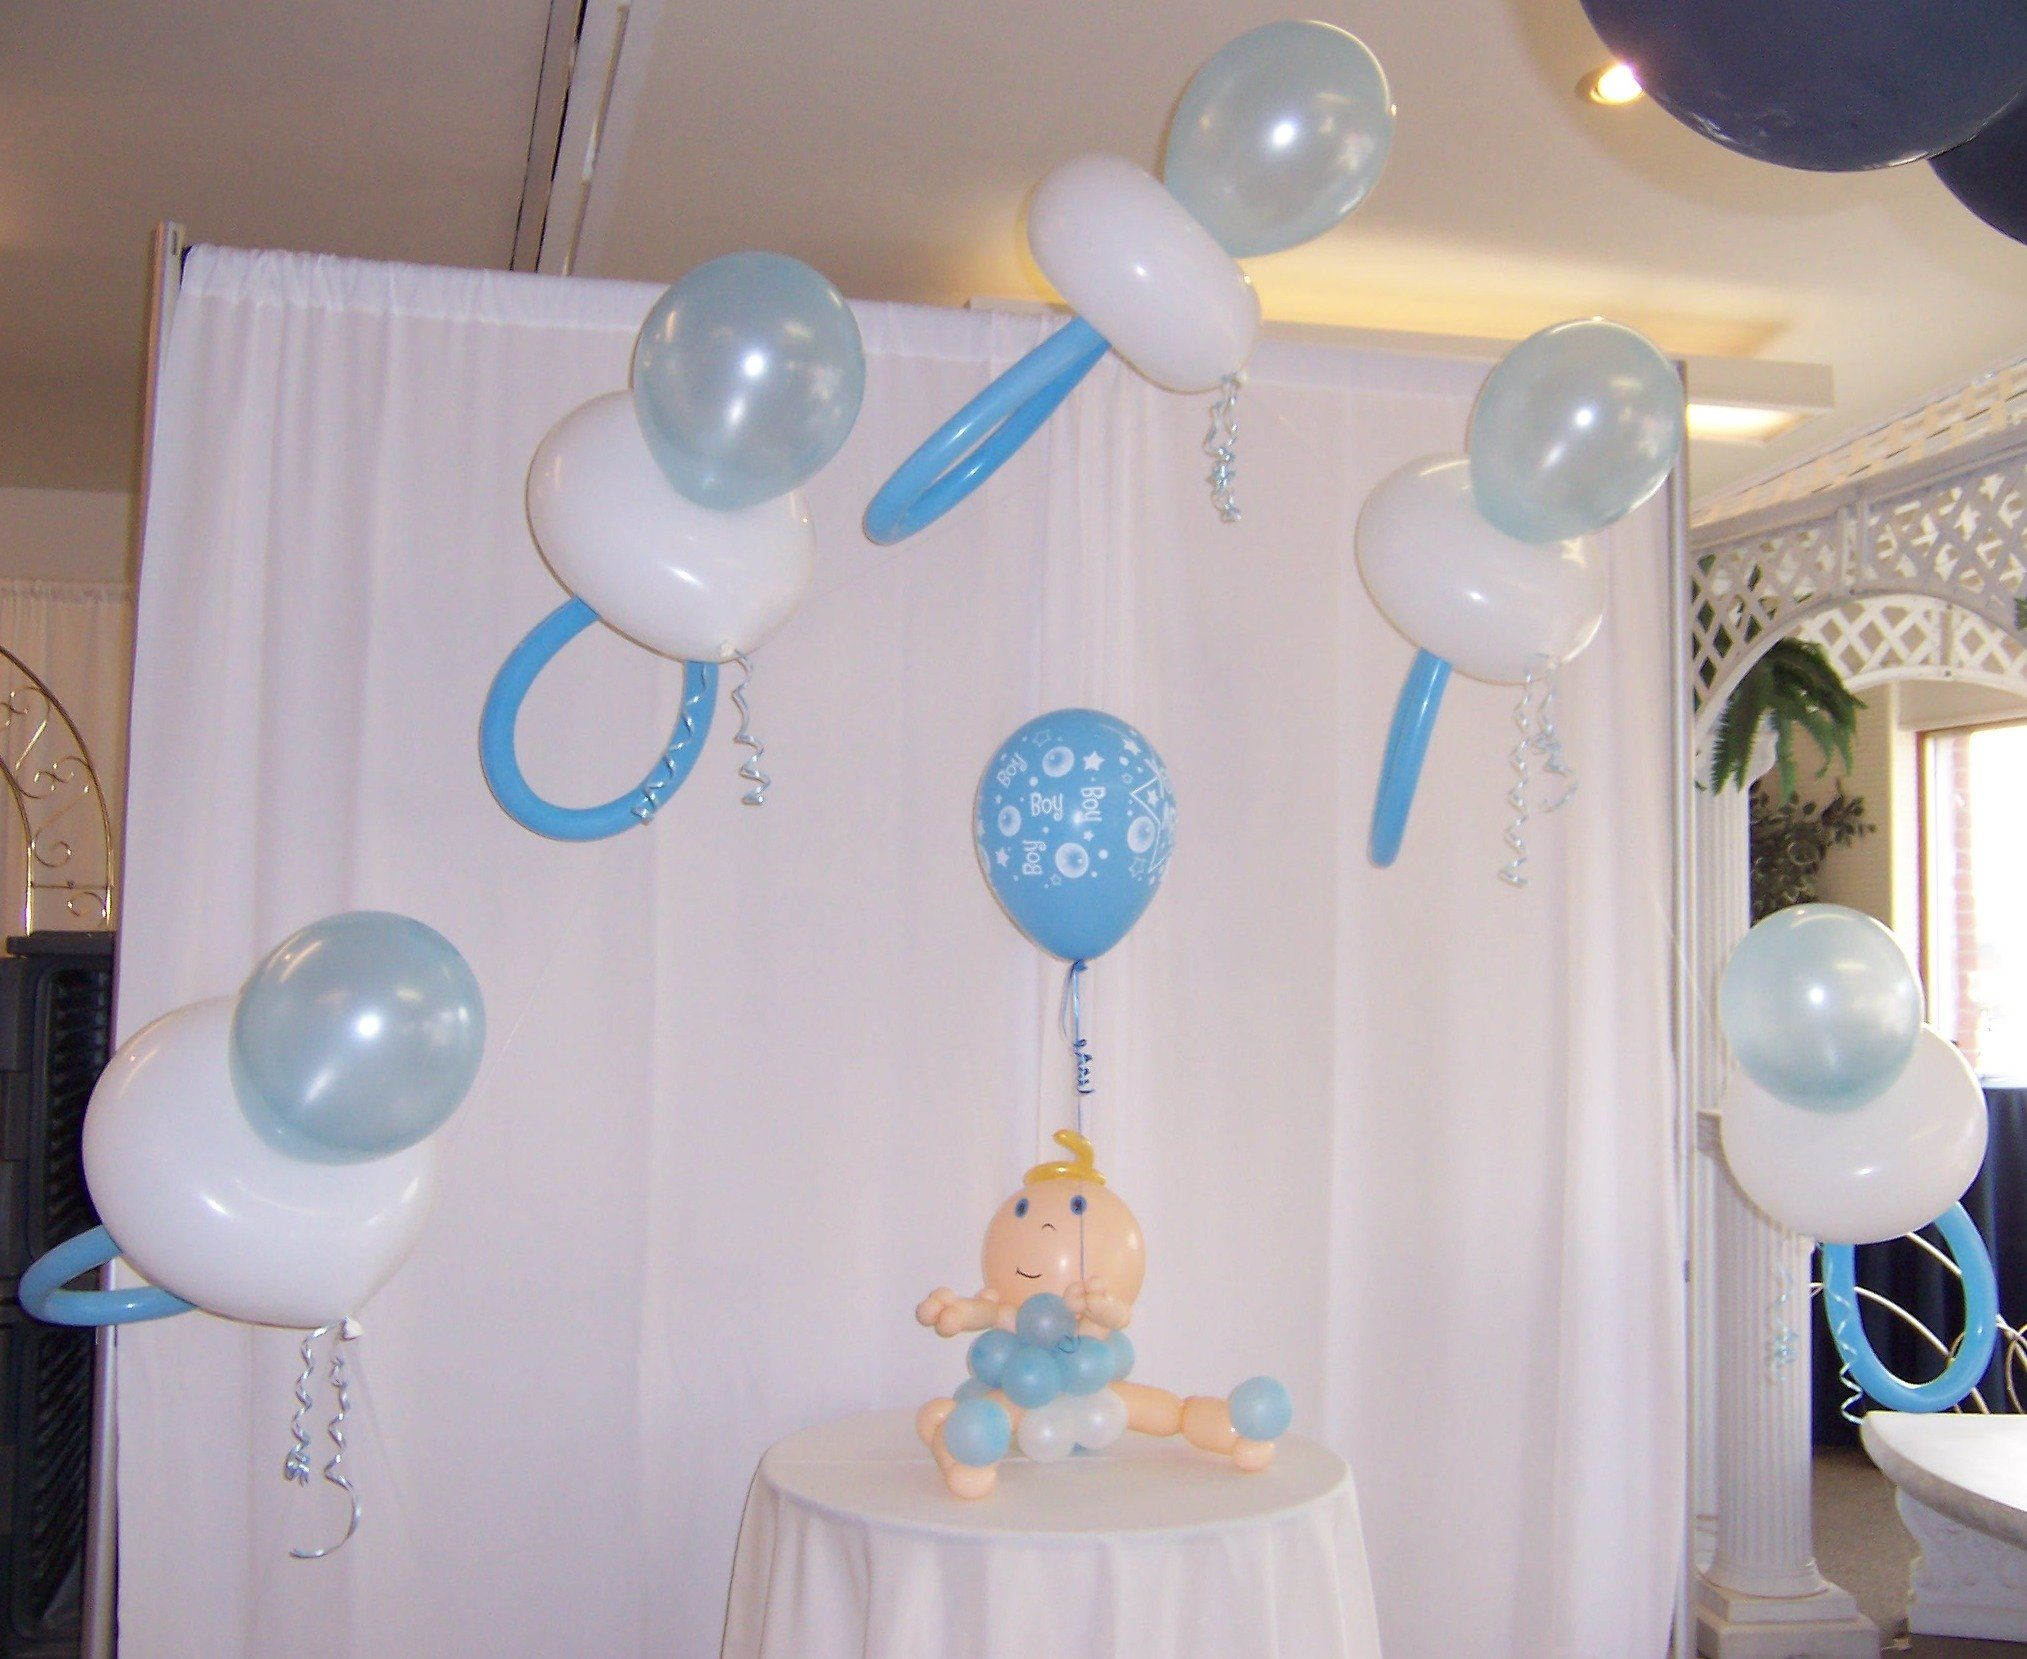 Baby Shower Balloon Decorations Hd 1080P 12 HD Wallpapers | Baby ...